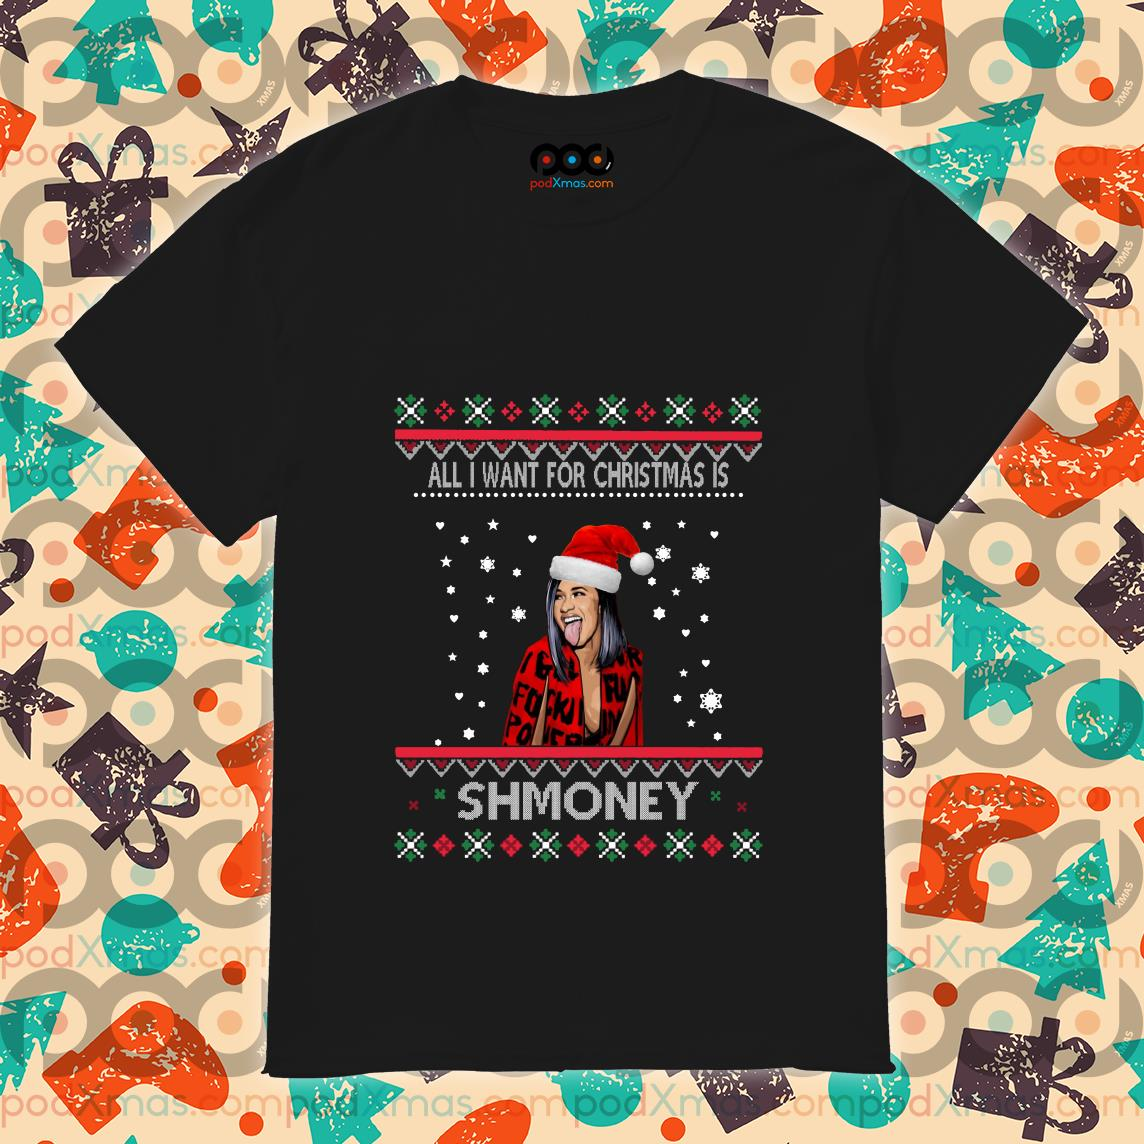 All I want for Christmas is Shmoney shirt